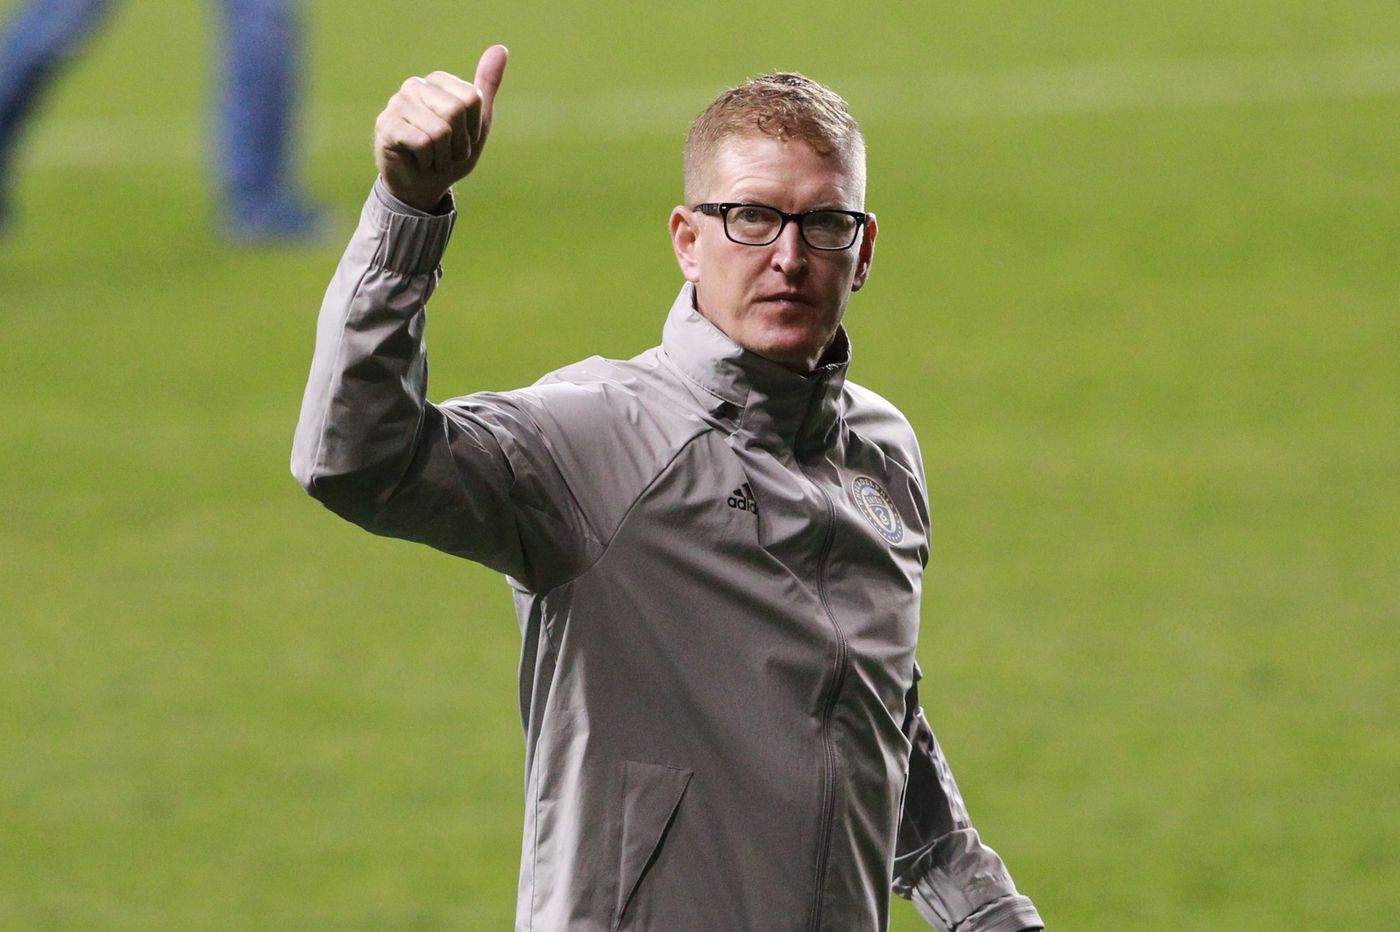 Union's Jim Curtin wins MLS Coach of the Year after historic successes on and off the field